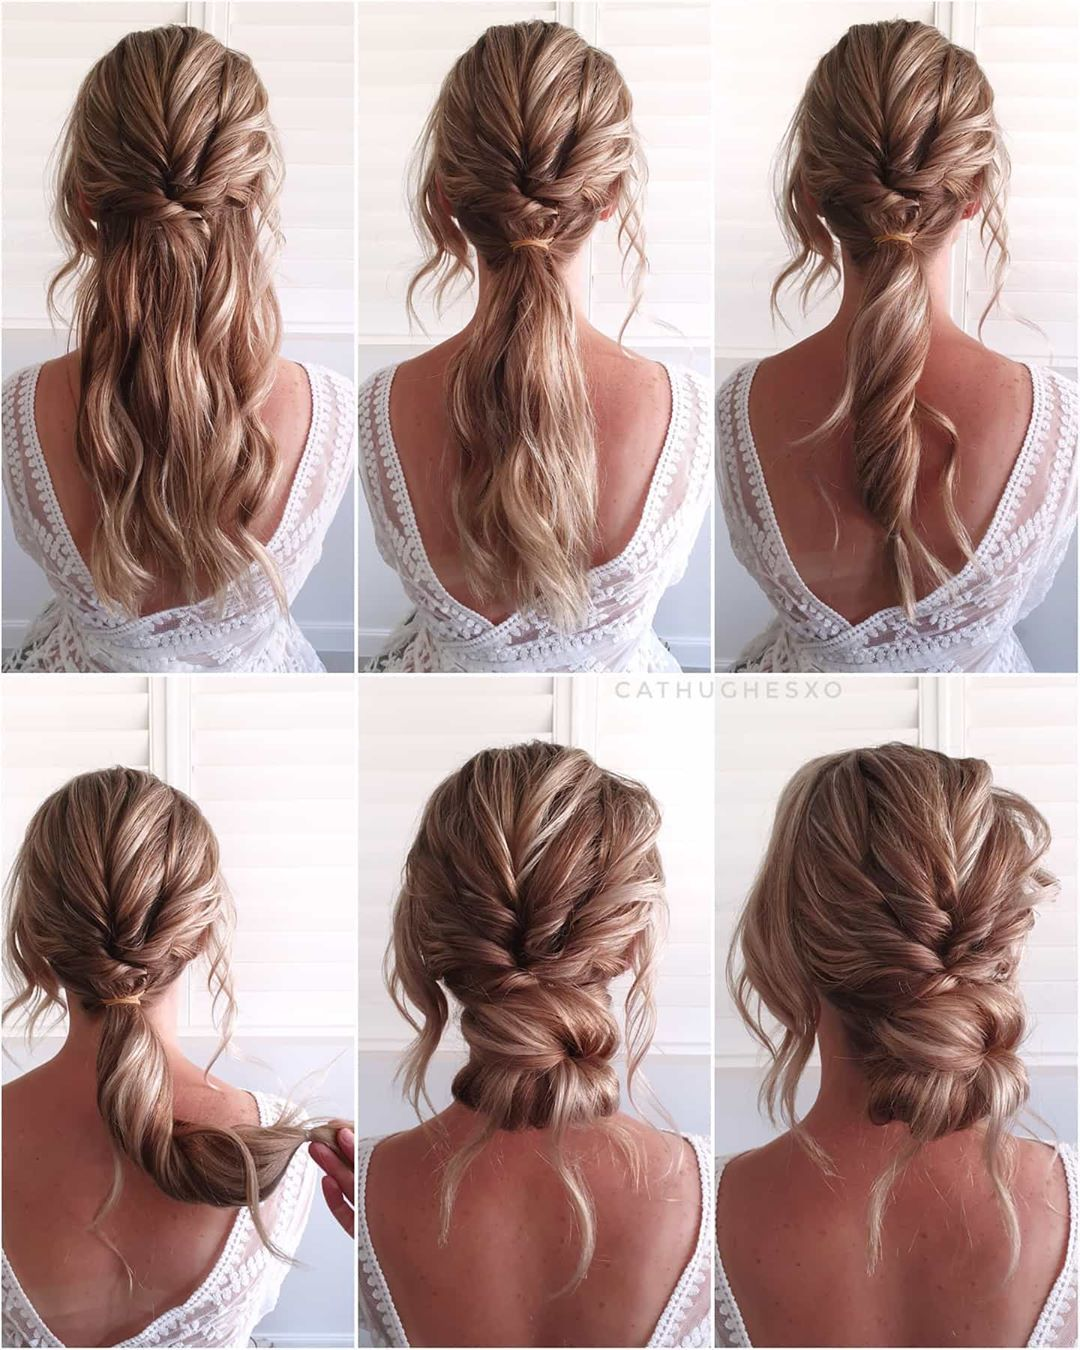 Simple And Pretty Diy Updo Hairstyle Tutorials For Wedding Guest Romantic In 2020 Updo Hairstyles Tutorials Easy Hairstyles For Long Hair Wedding Guest Hairstyles